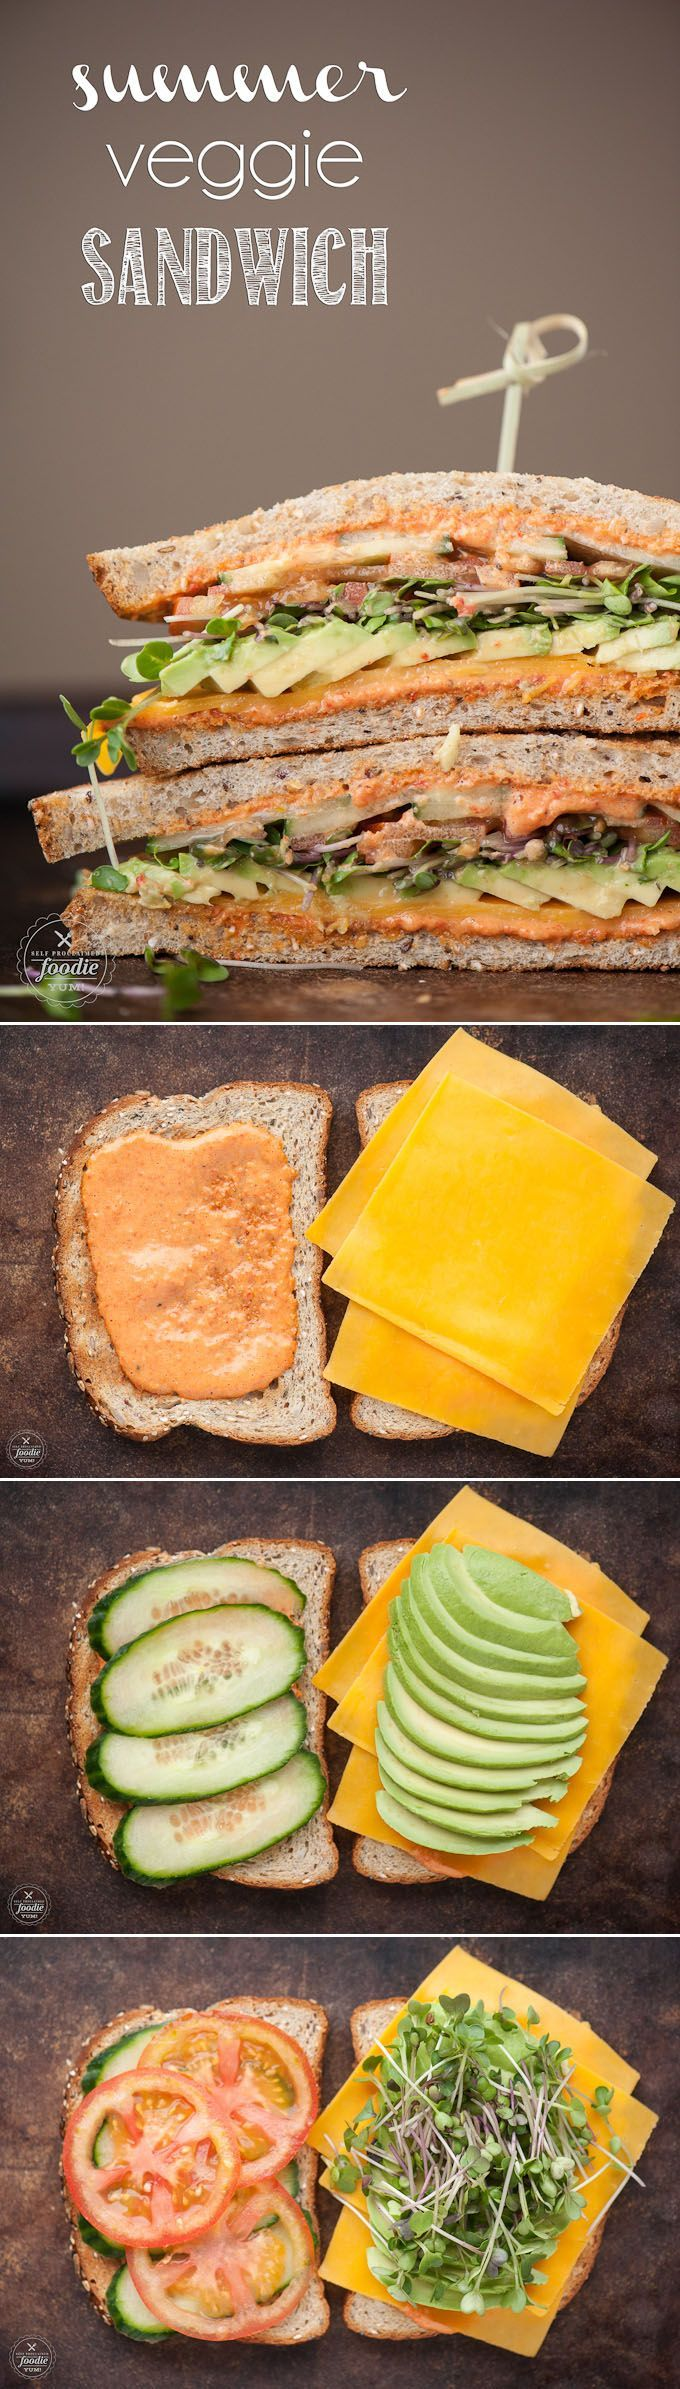 28 best healthy picnic ideas images on pinterest cooking recipes can you think of a better way to enjoy summer than enjoying a lovely picnic outdoors while enjoying something like this summer veggie sandwich forumfinder Choice Image